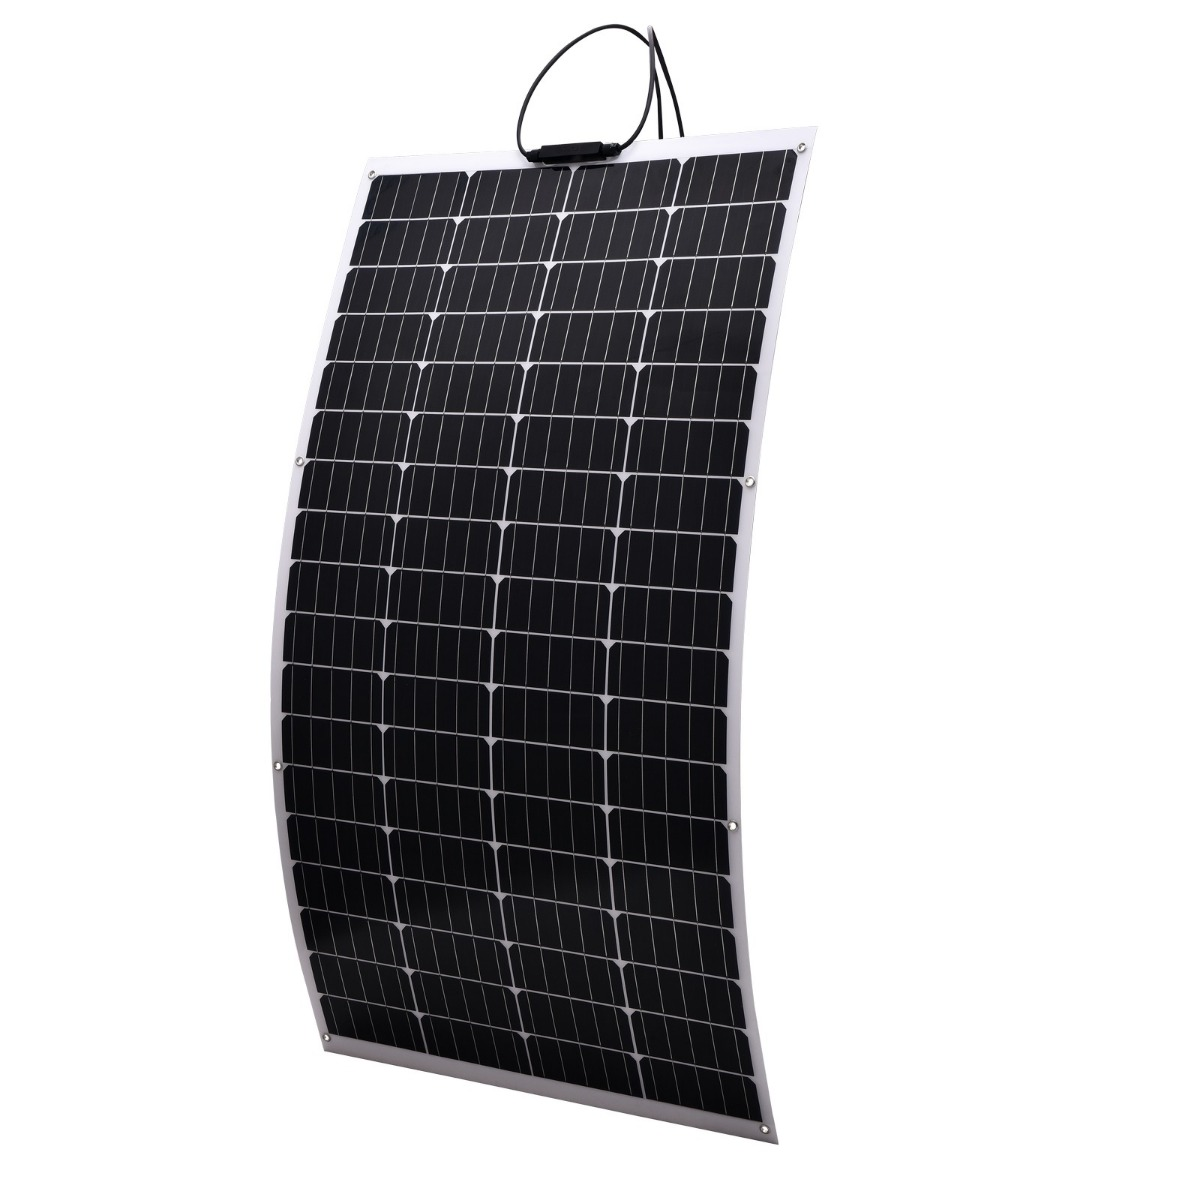 160W 12V Flexible Solar Panel Boat Caravan Camping Power Mono Charging Kit